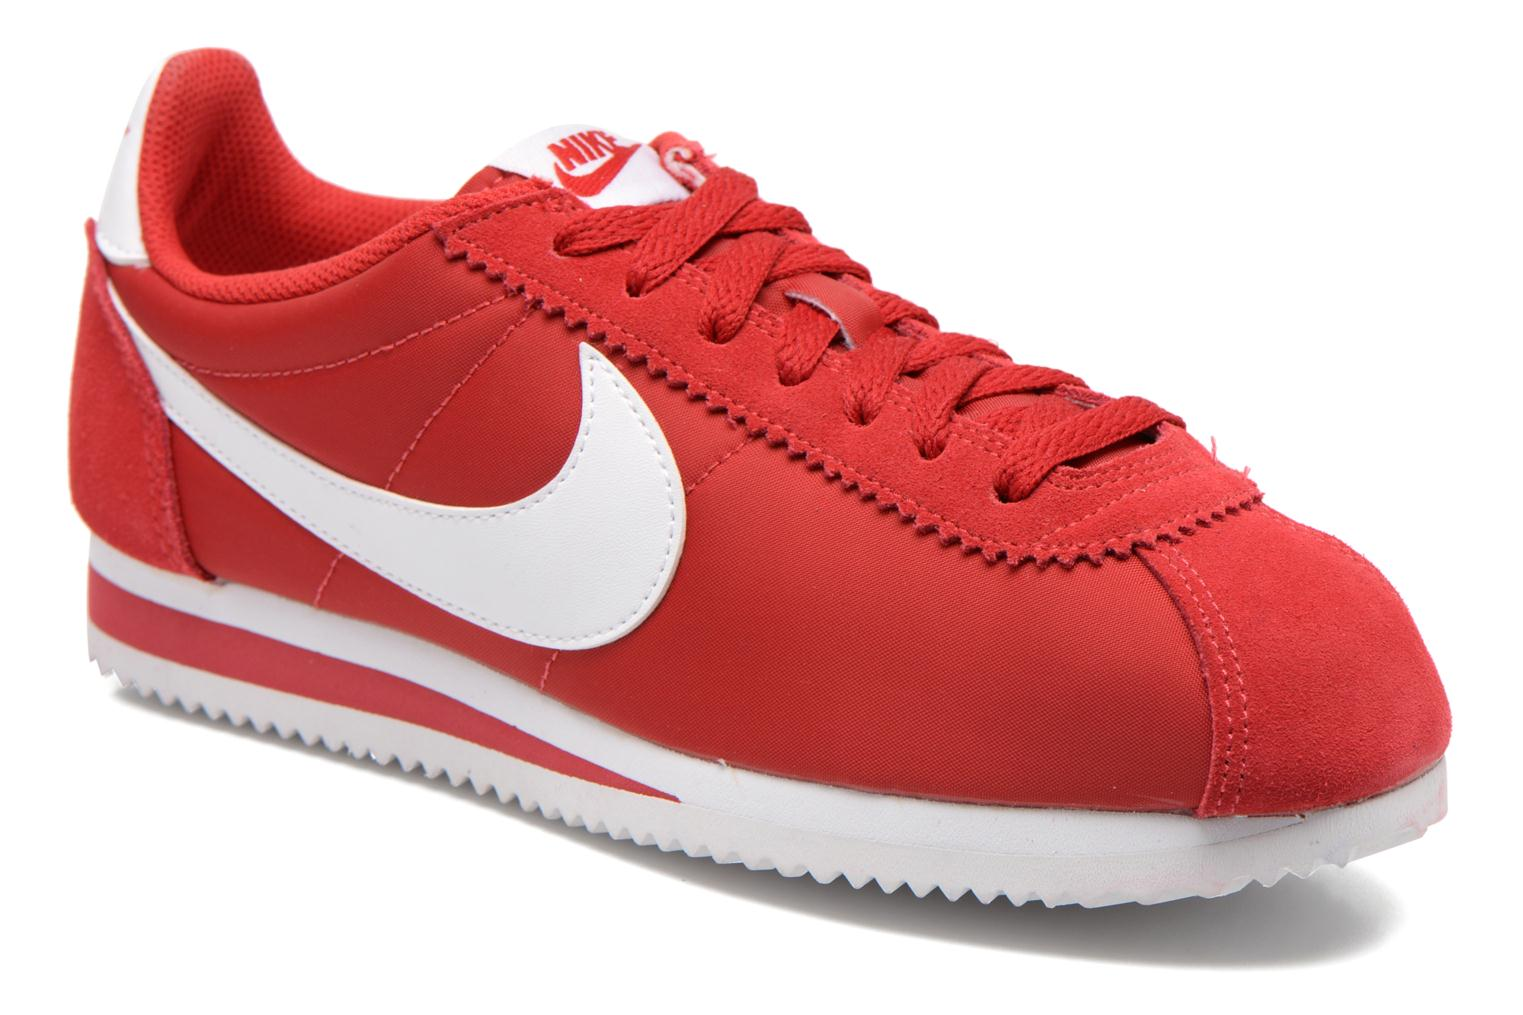 nike classic cortez rouge, Classic Cortez Nylon Gym Red/White